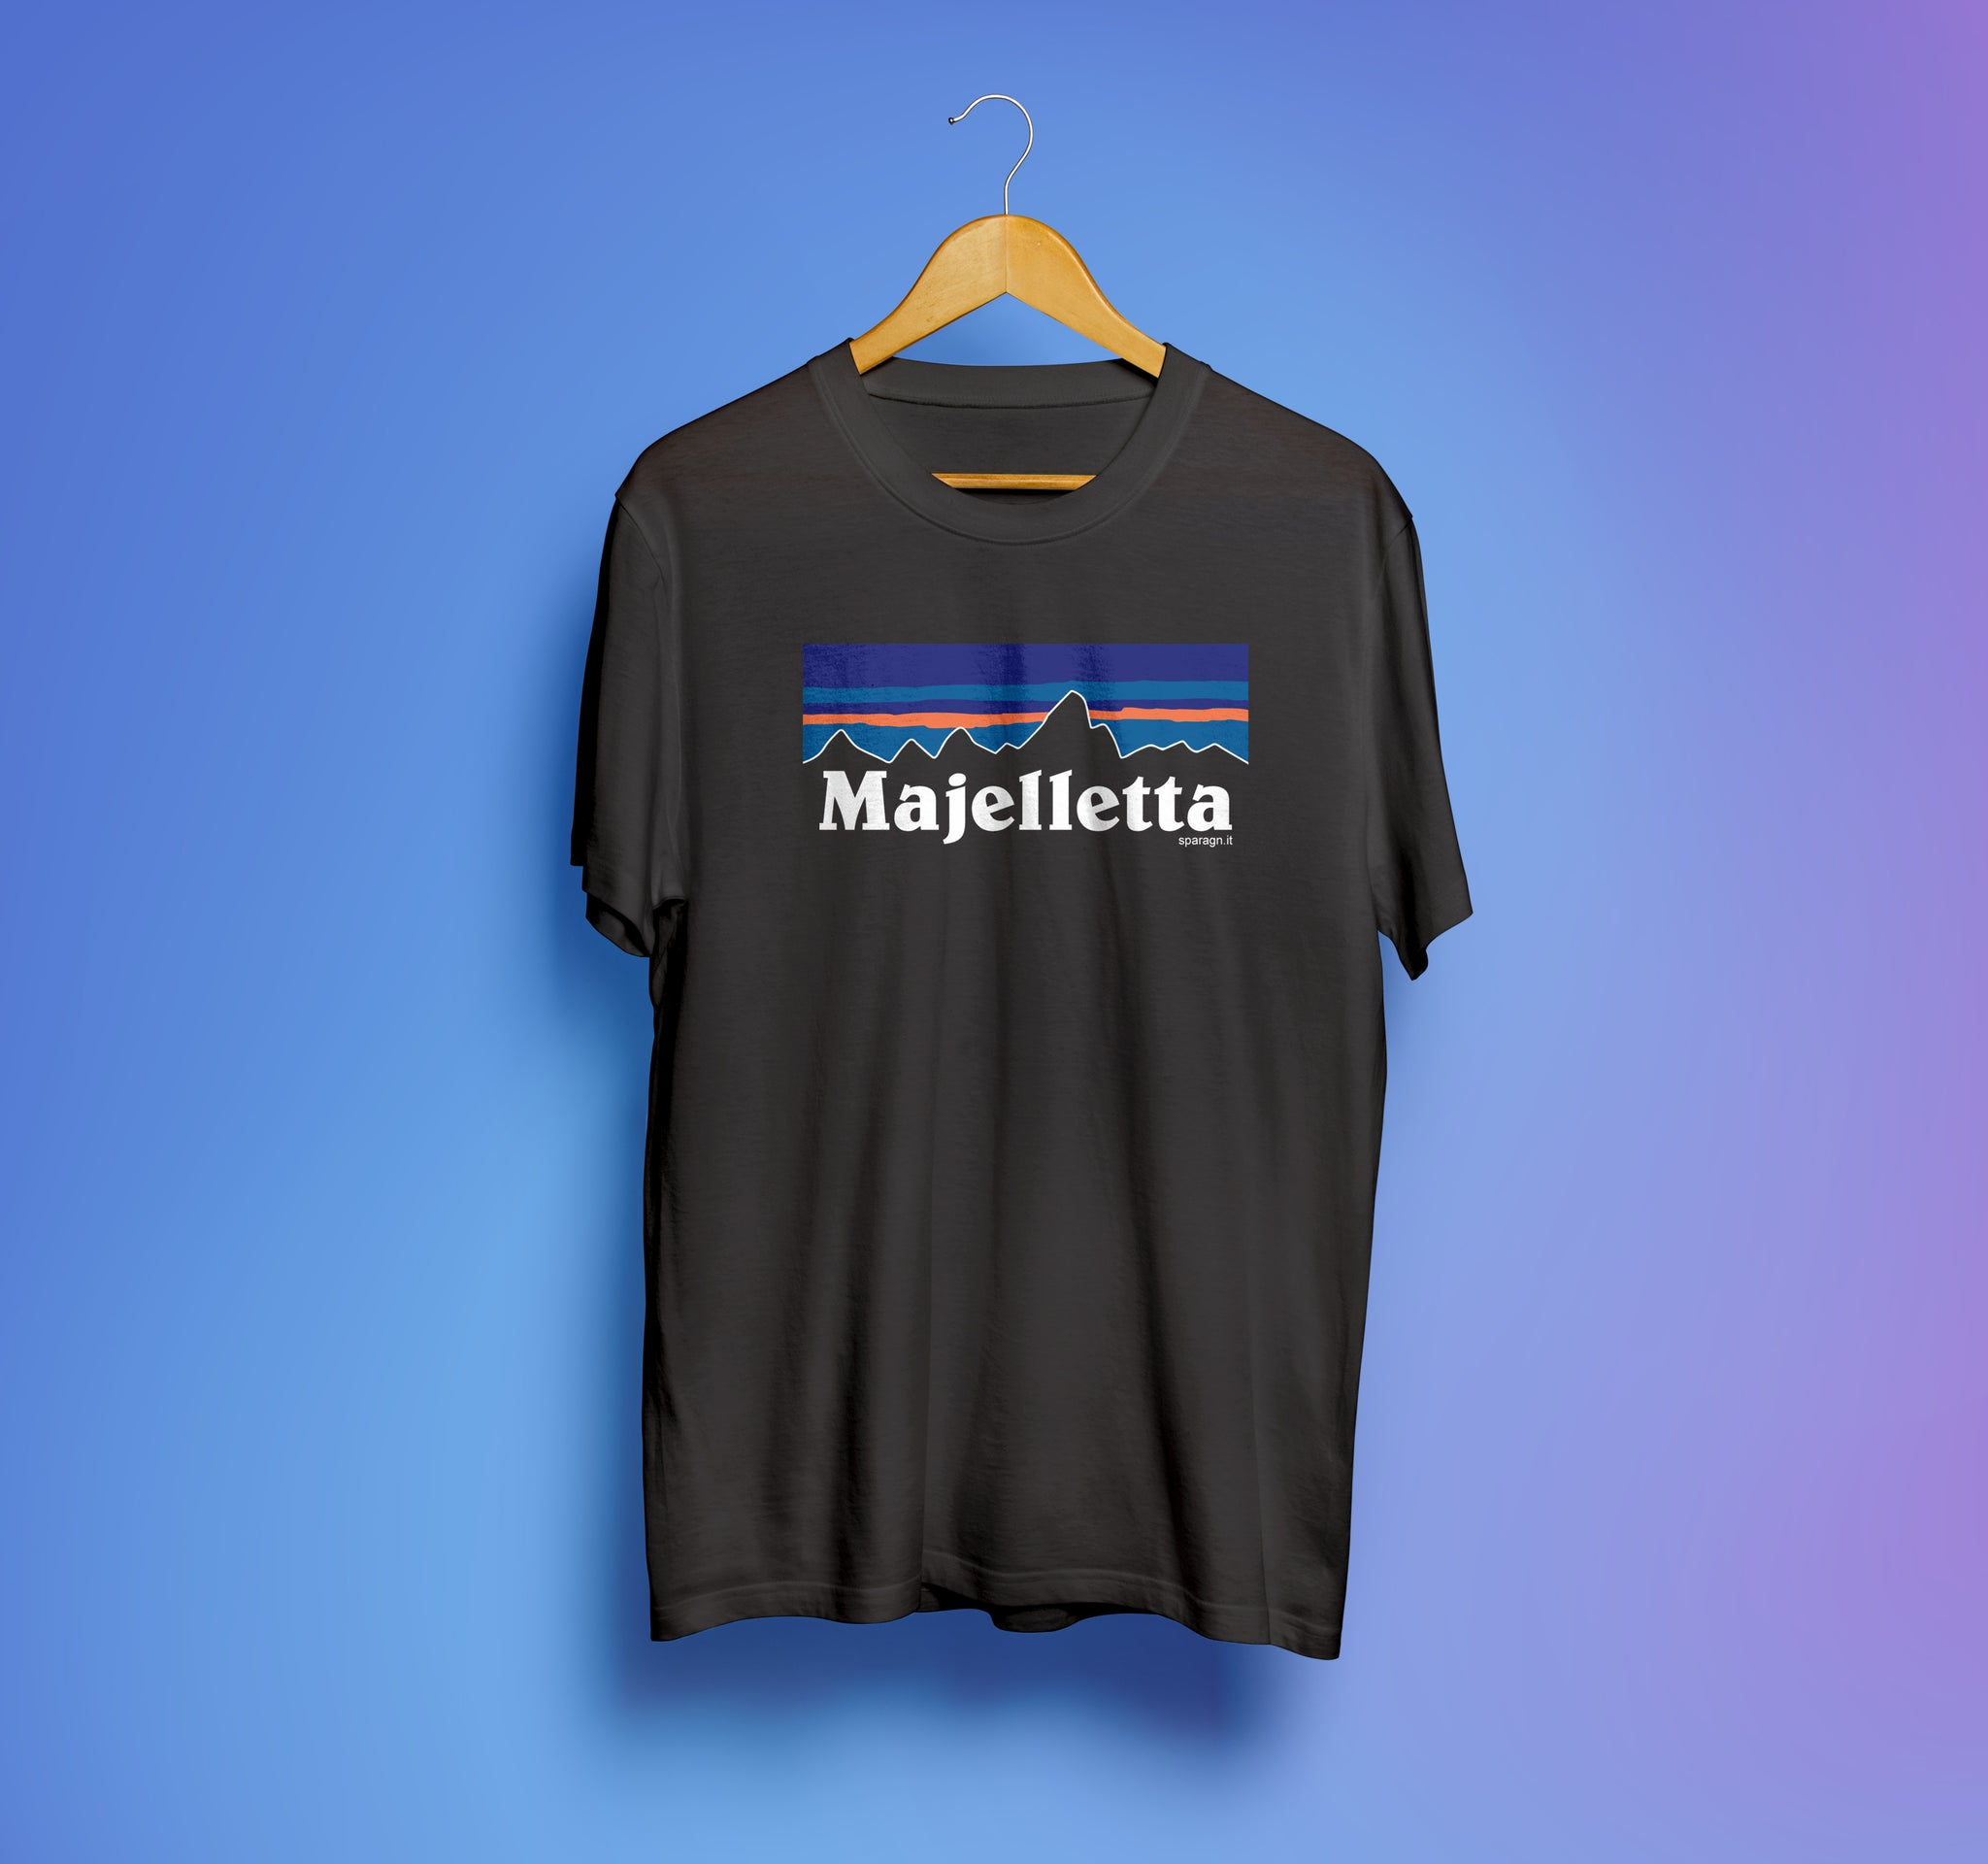 Majelletta - T-Shirt